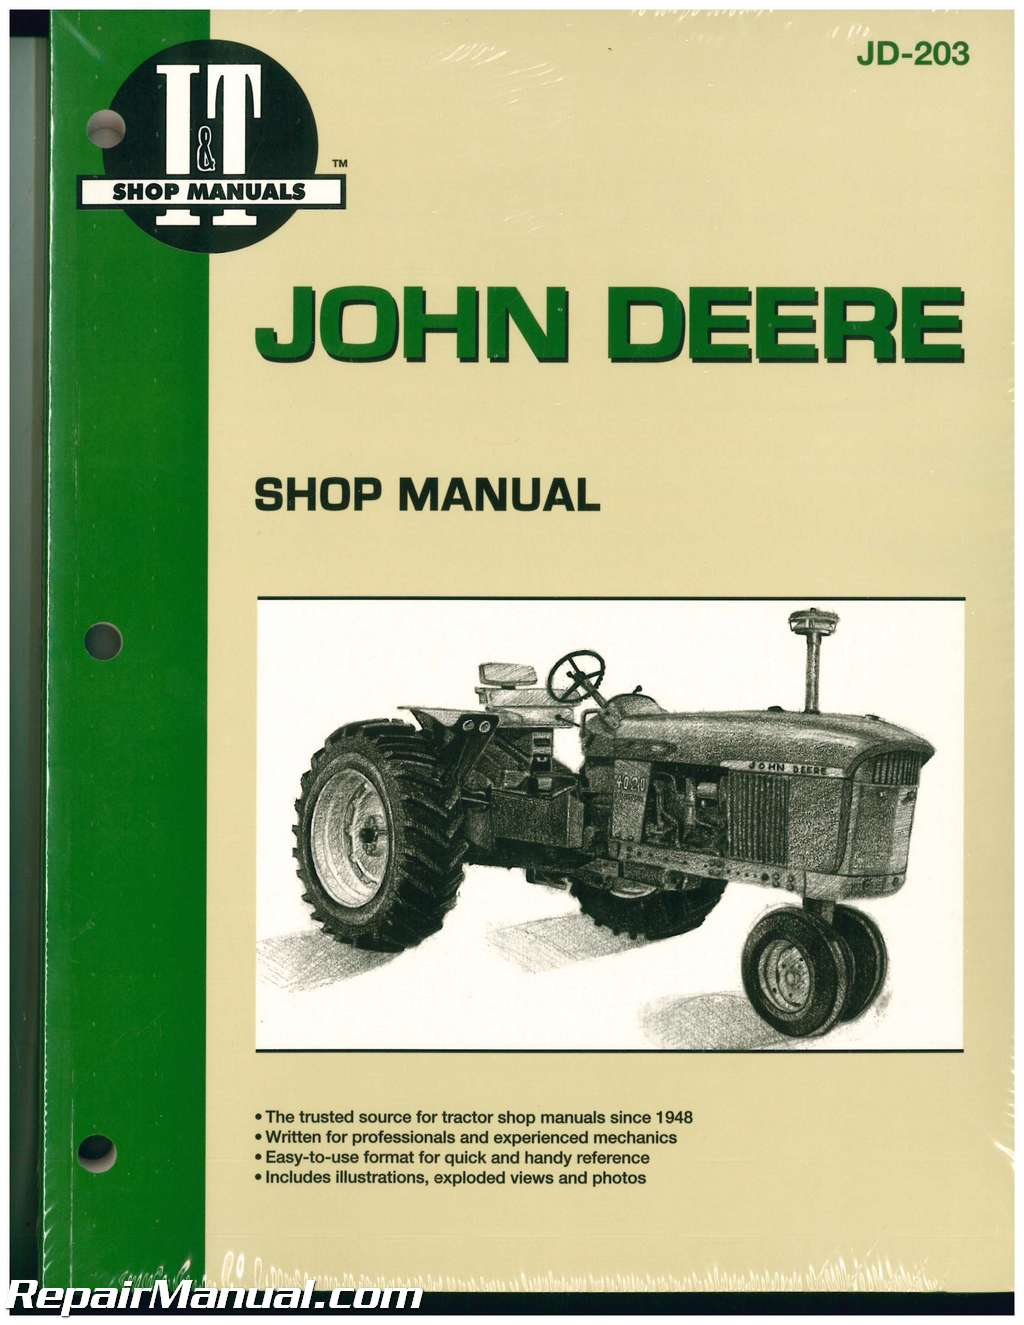 John Deere 3010 3020 4000 4010 4020 4320 4520 4620 5010 5020 and 6030 Tractor Manual_001 john deere 3010 3020 4000 4010 4020 4320 4520 4620 5010 5020 and